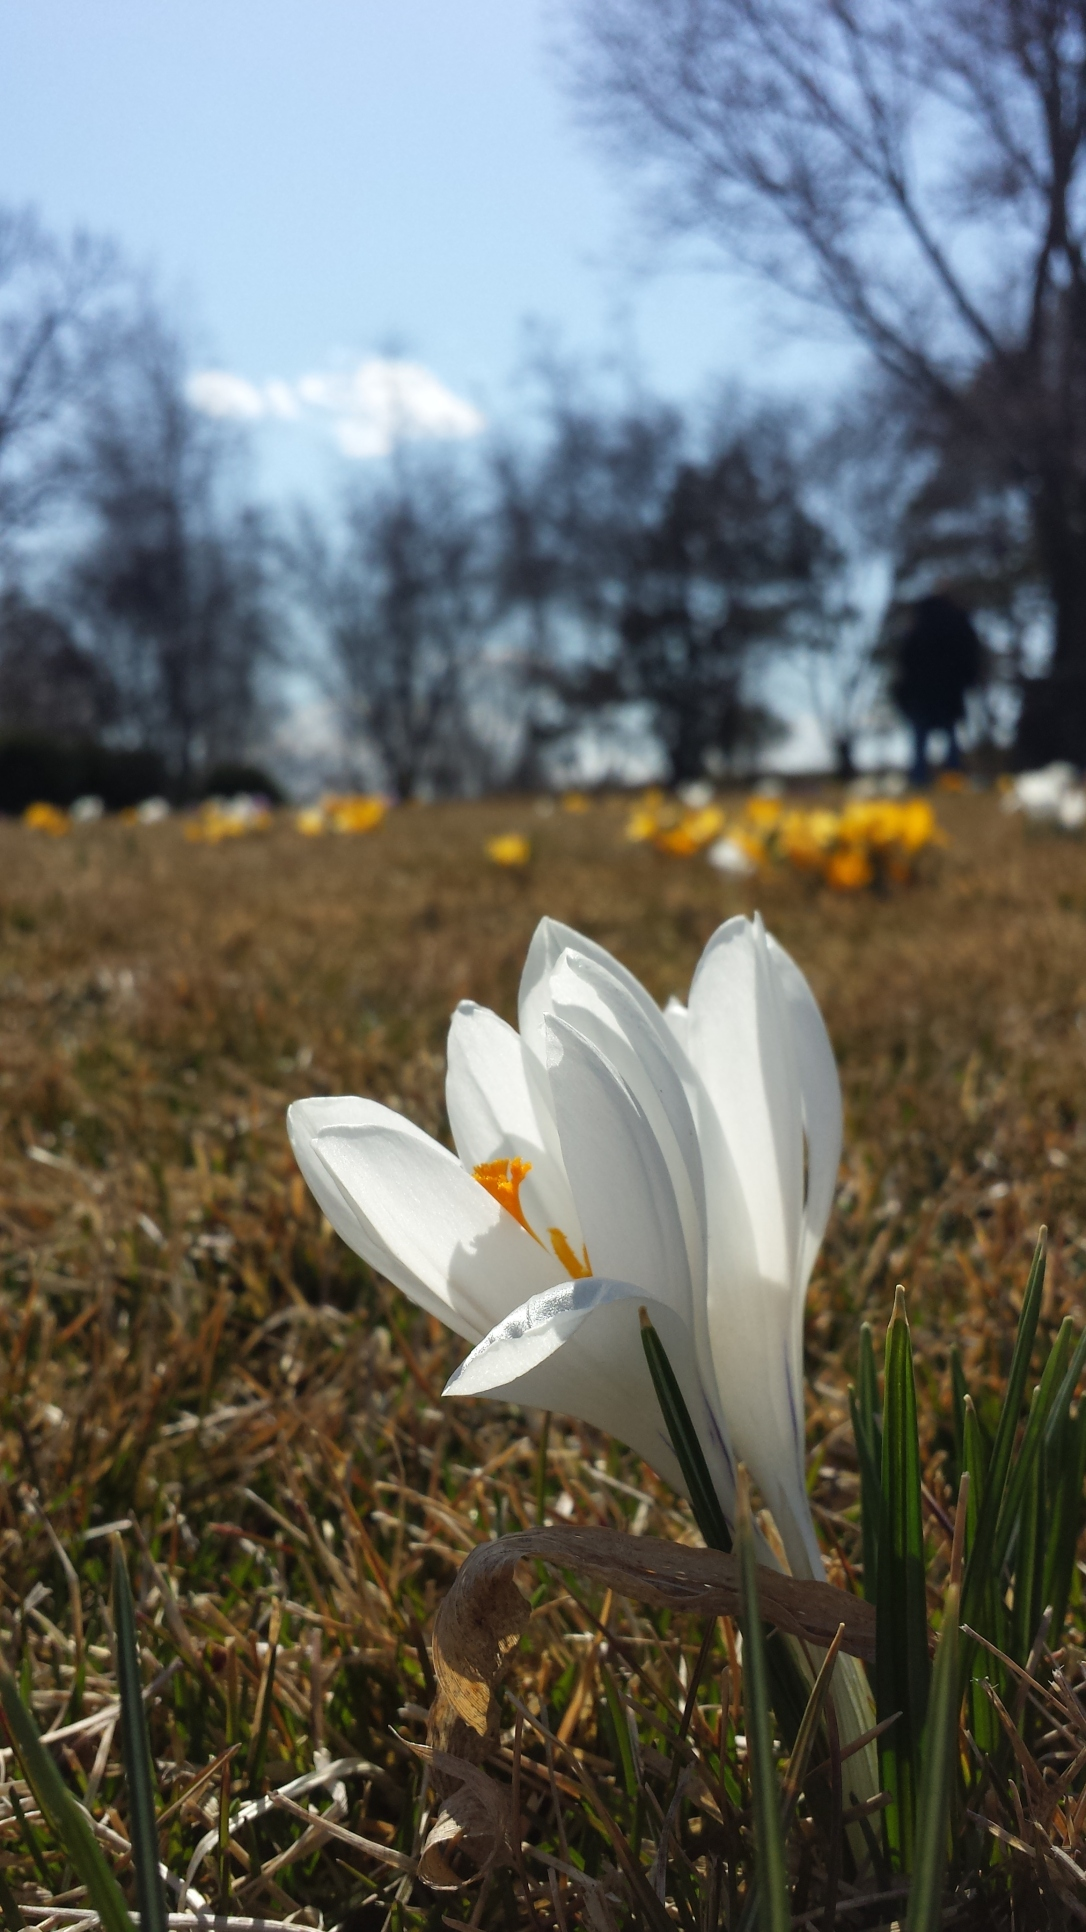 BotanicGarden single crocus